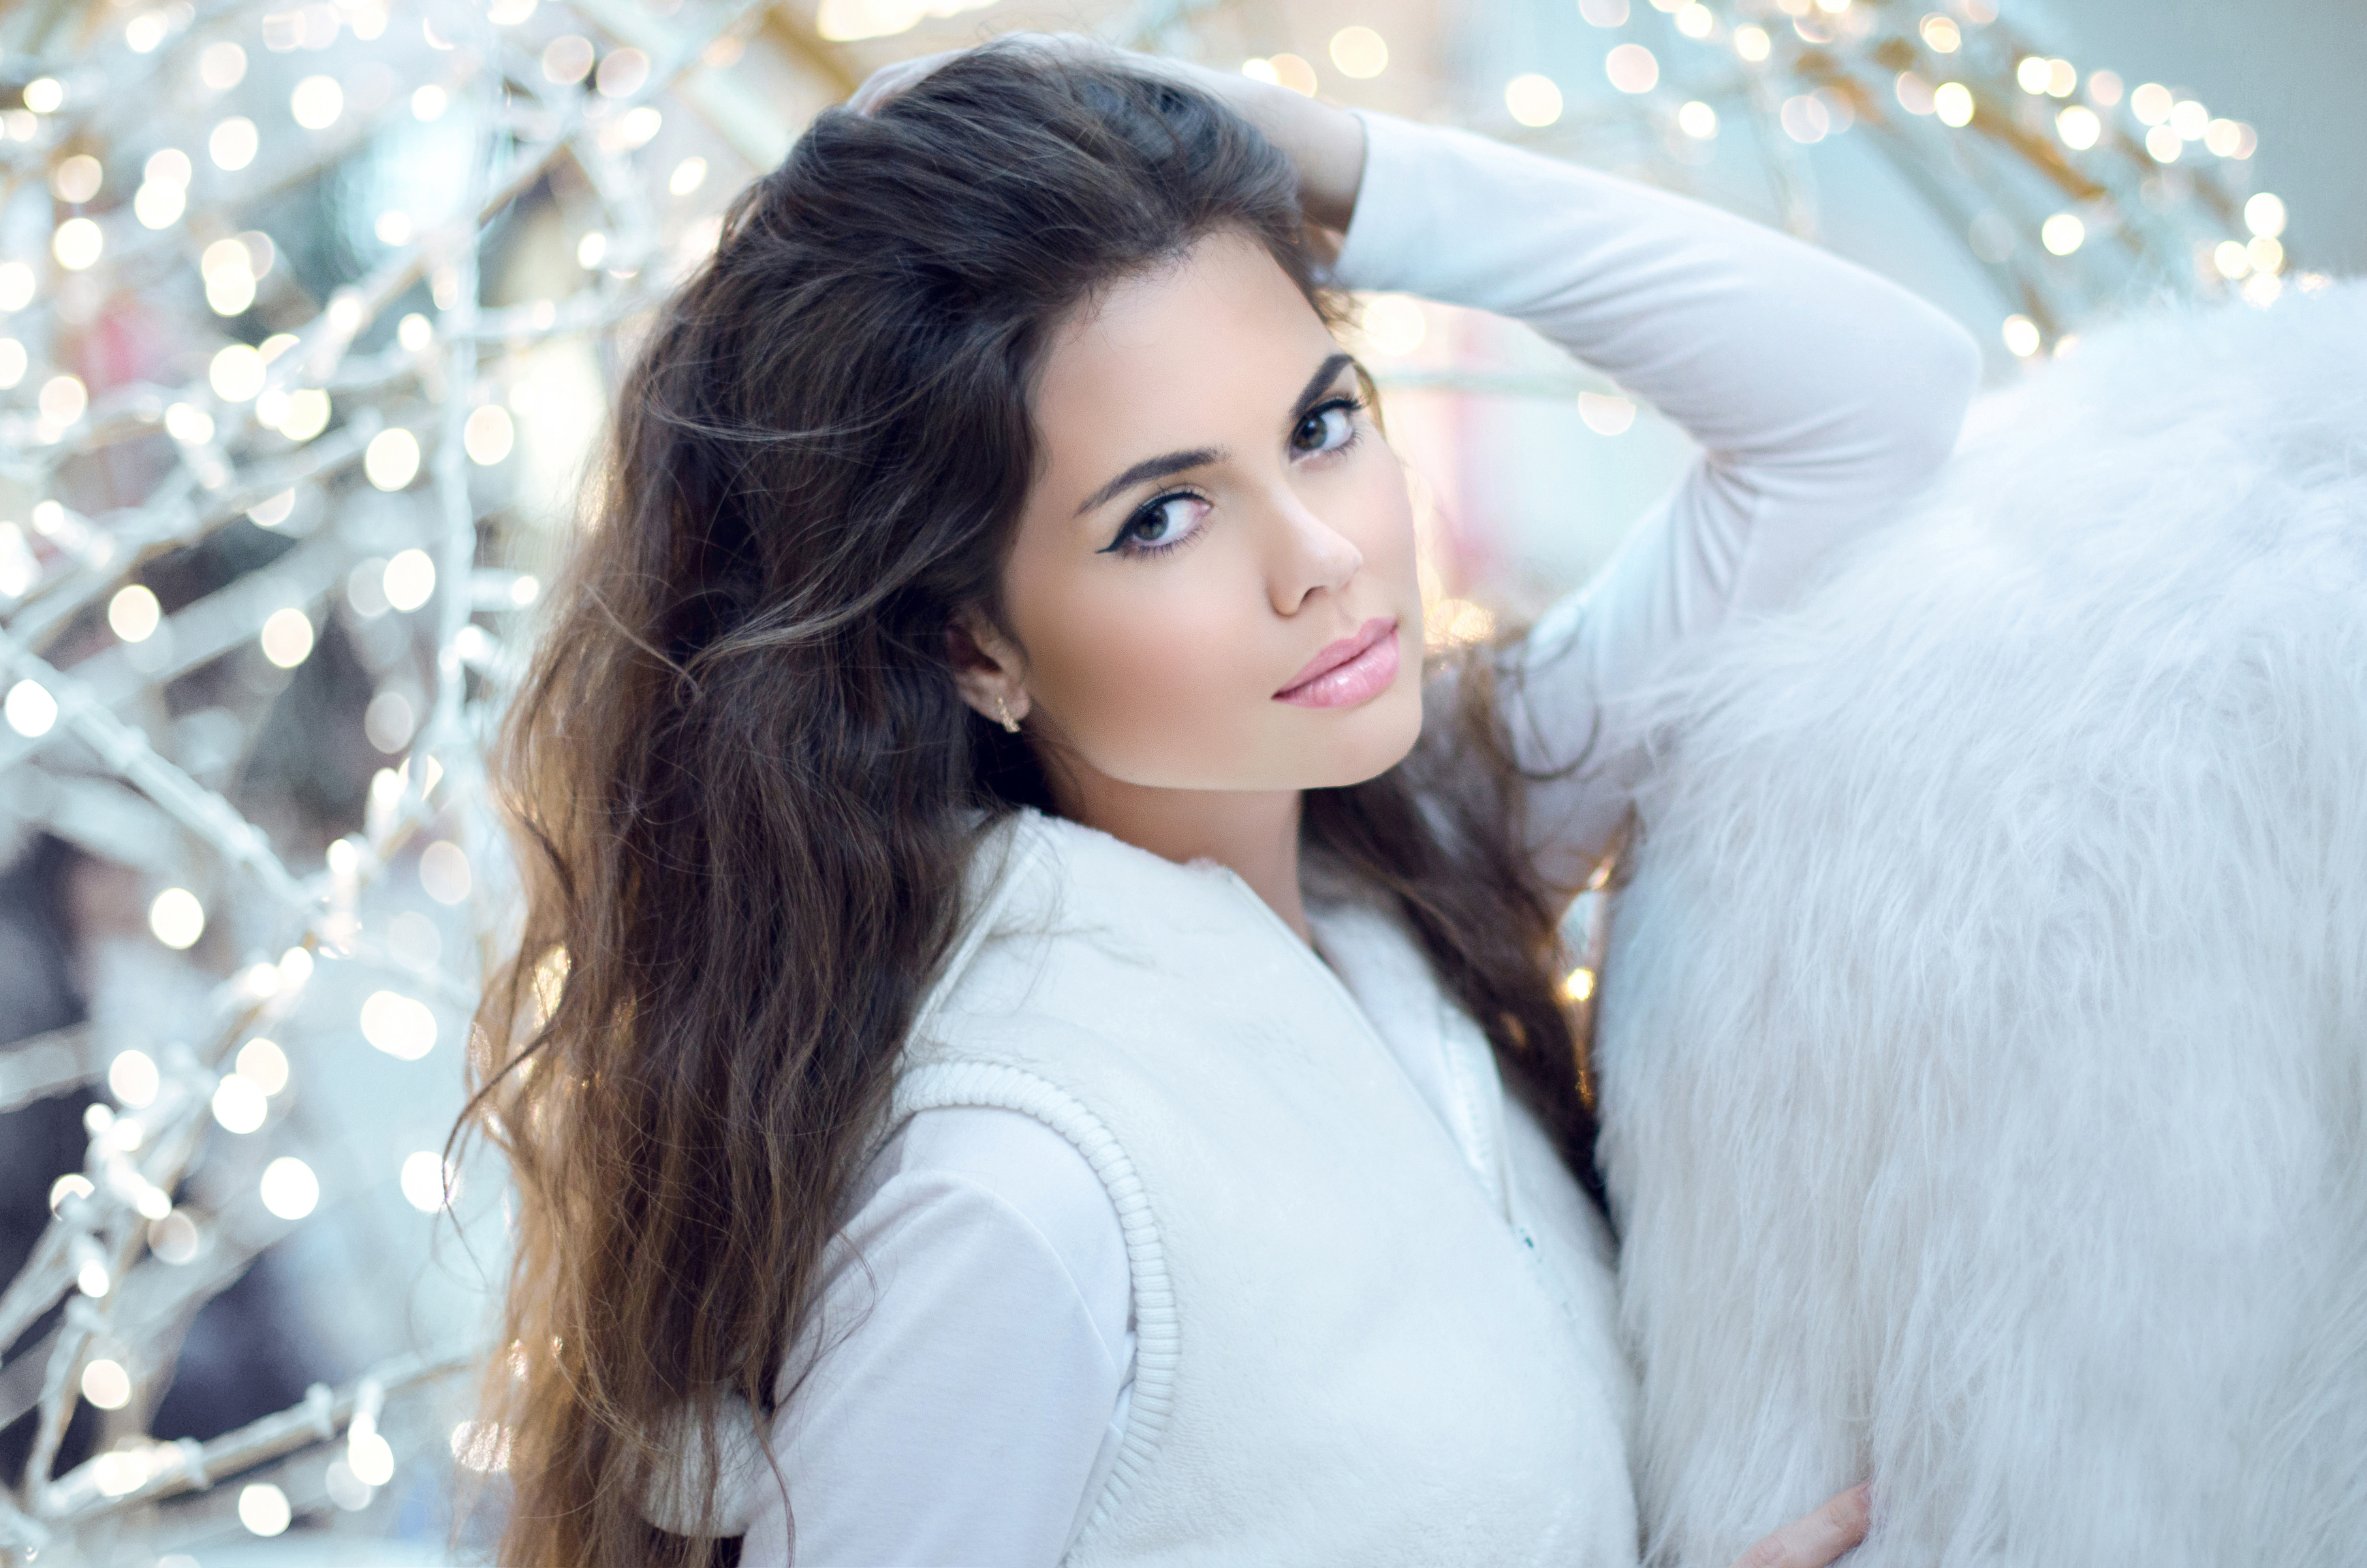 Winter Beauty Woman. Beautiful brunette girl with long hair posing over snow blinking lights background